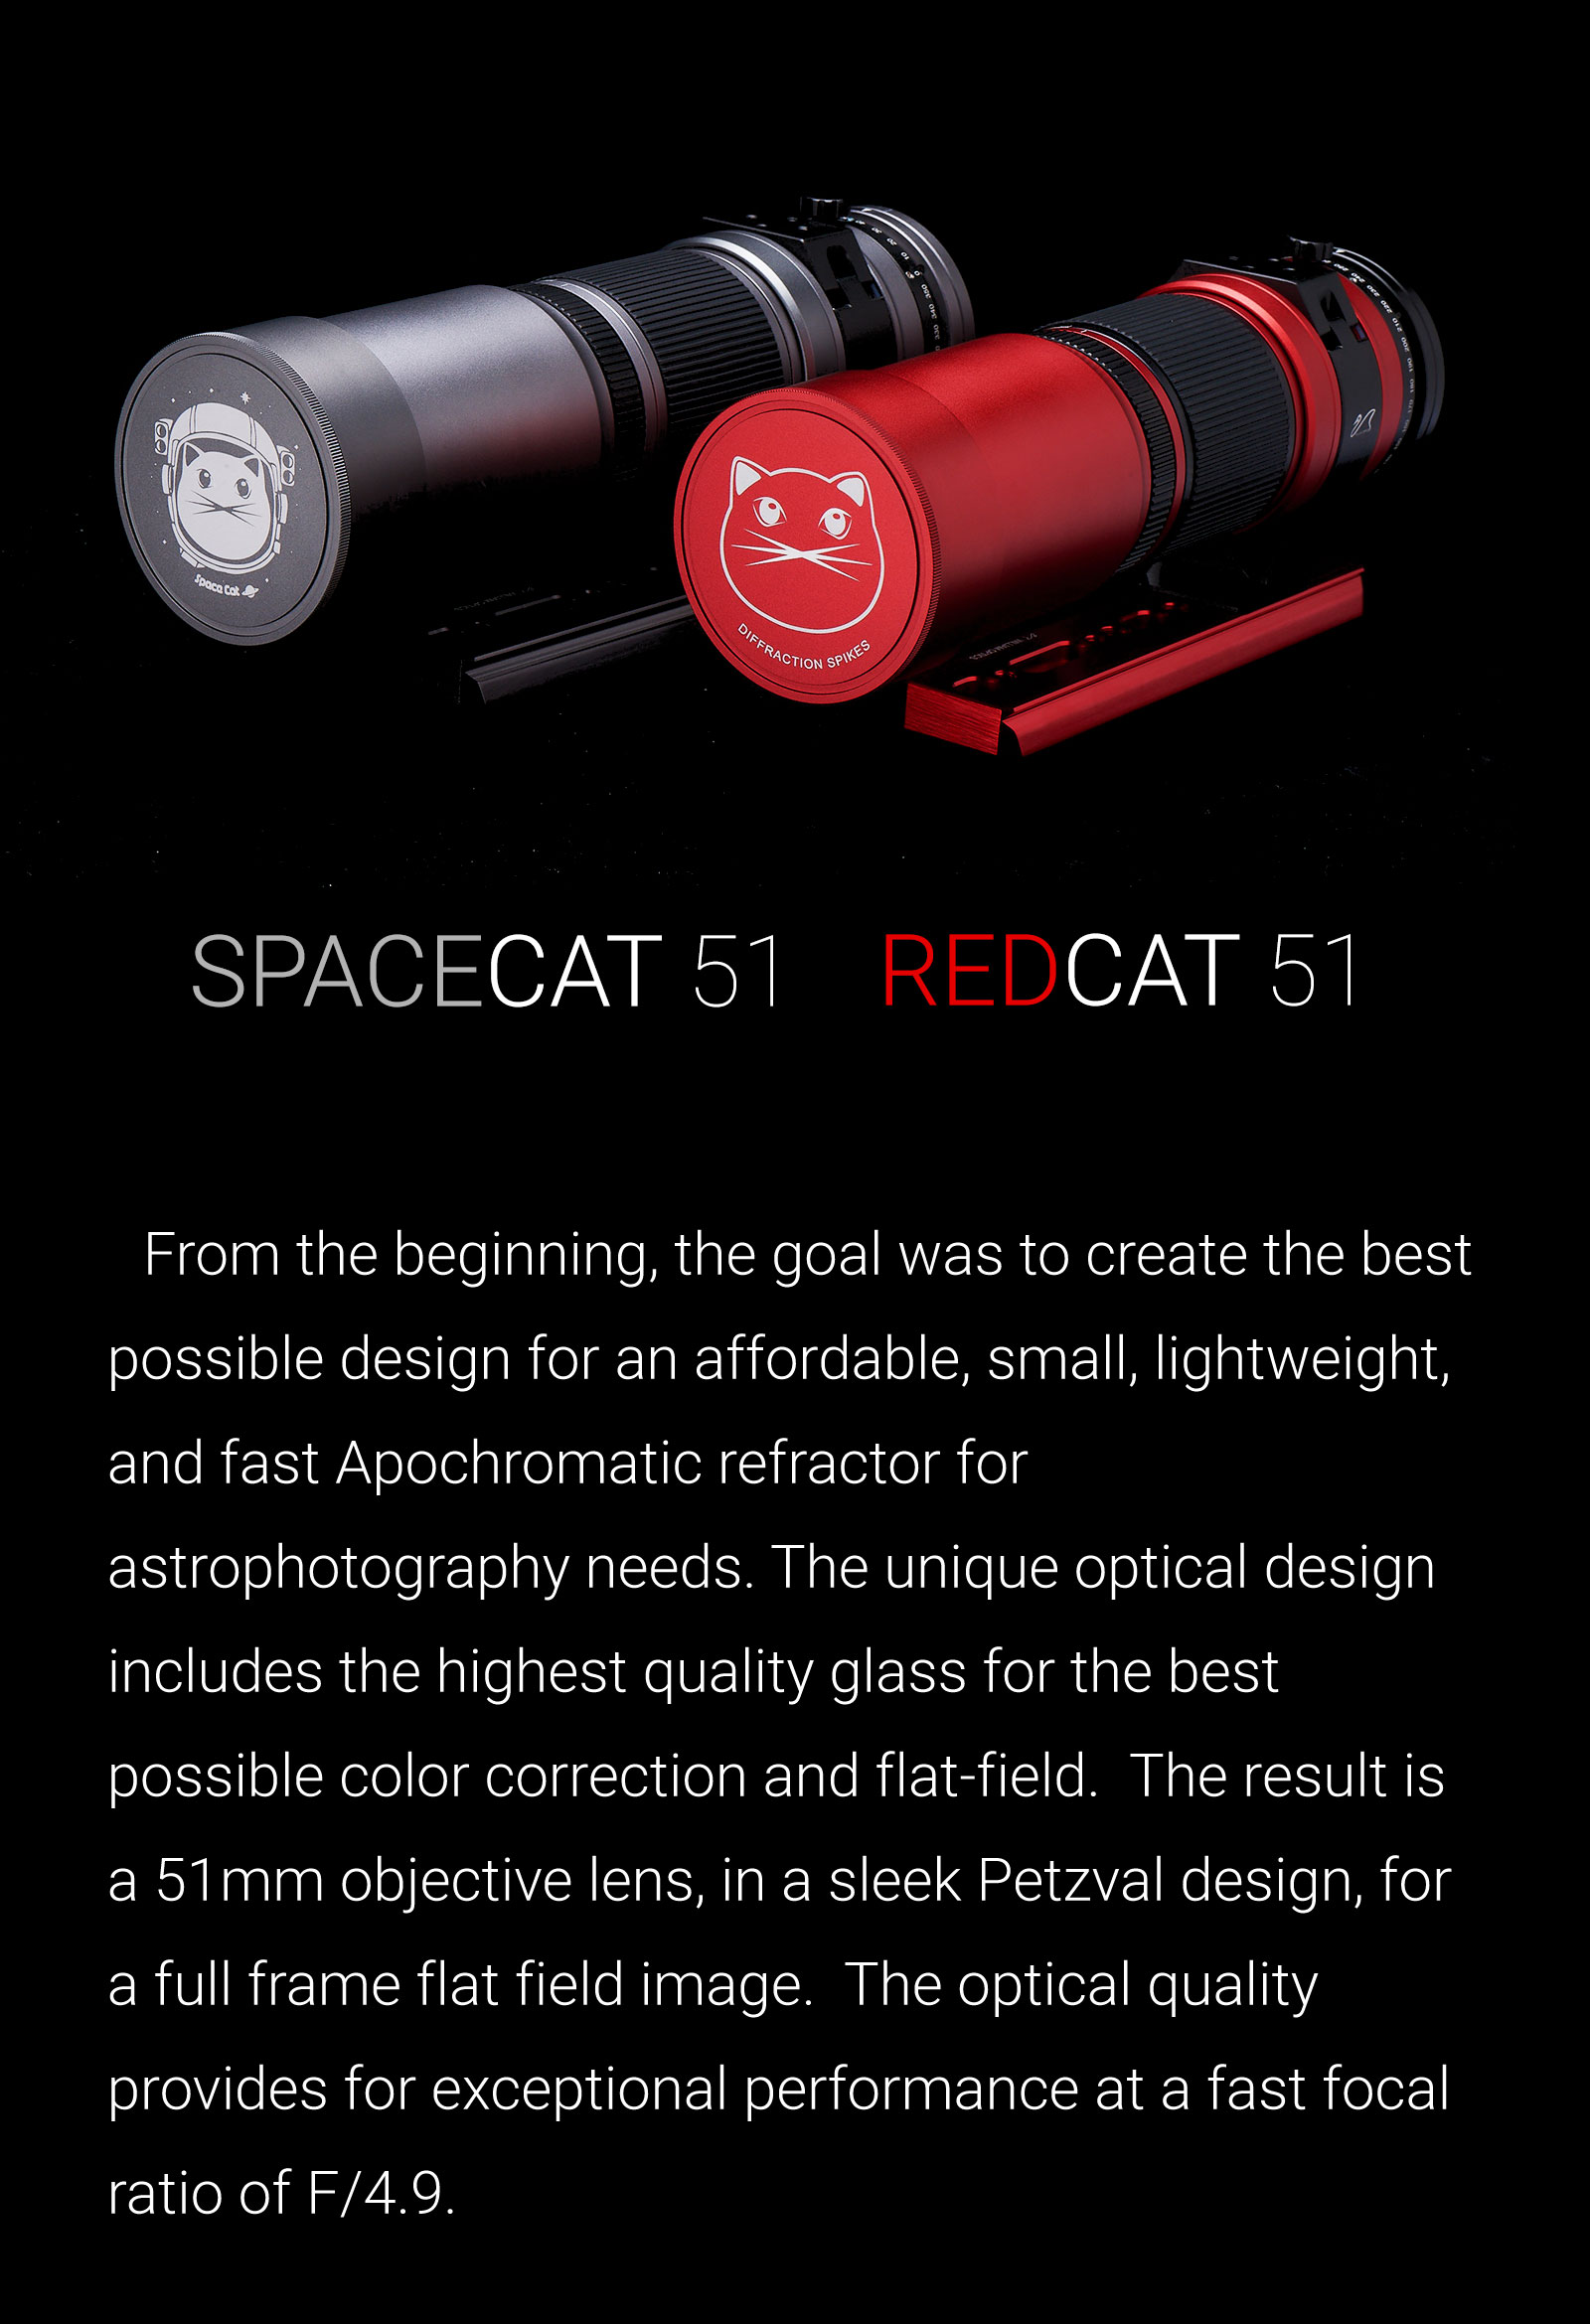 redcat-51-spacecat-51-introduction.jpg